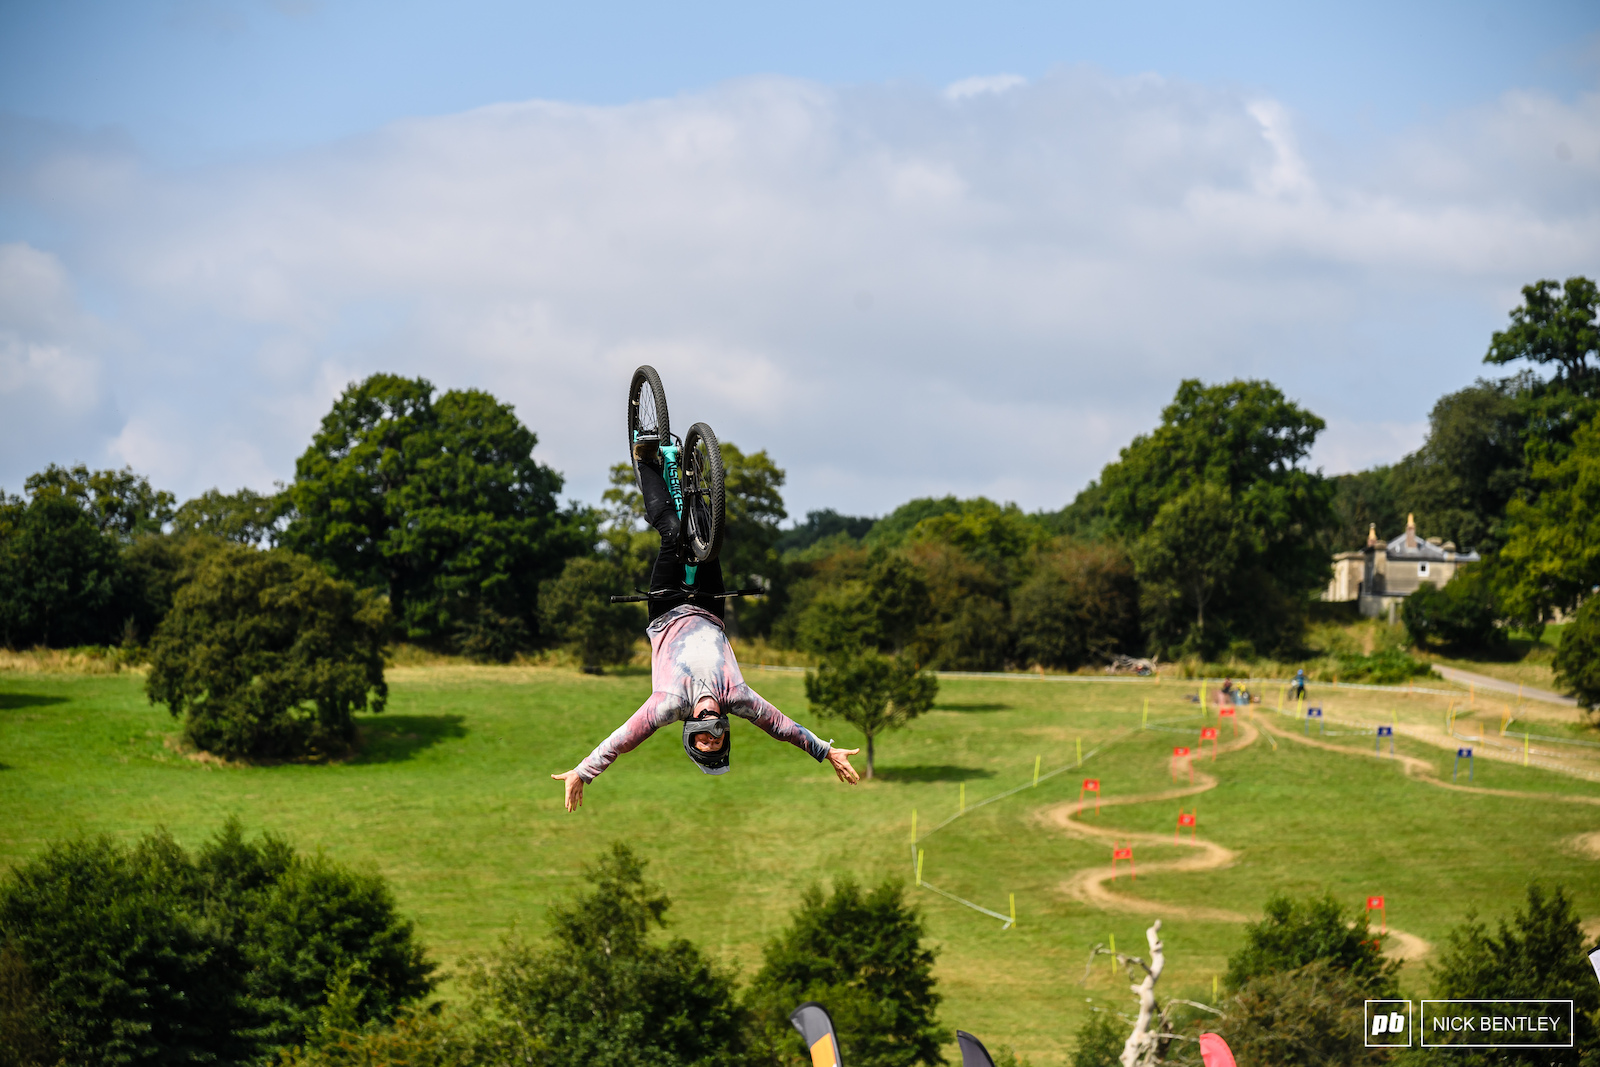 Zac Rainbow pulling a Tuck No Hander Back Flip into the stunning Eastnor Deer Park view